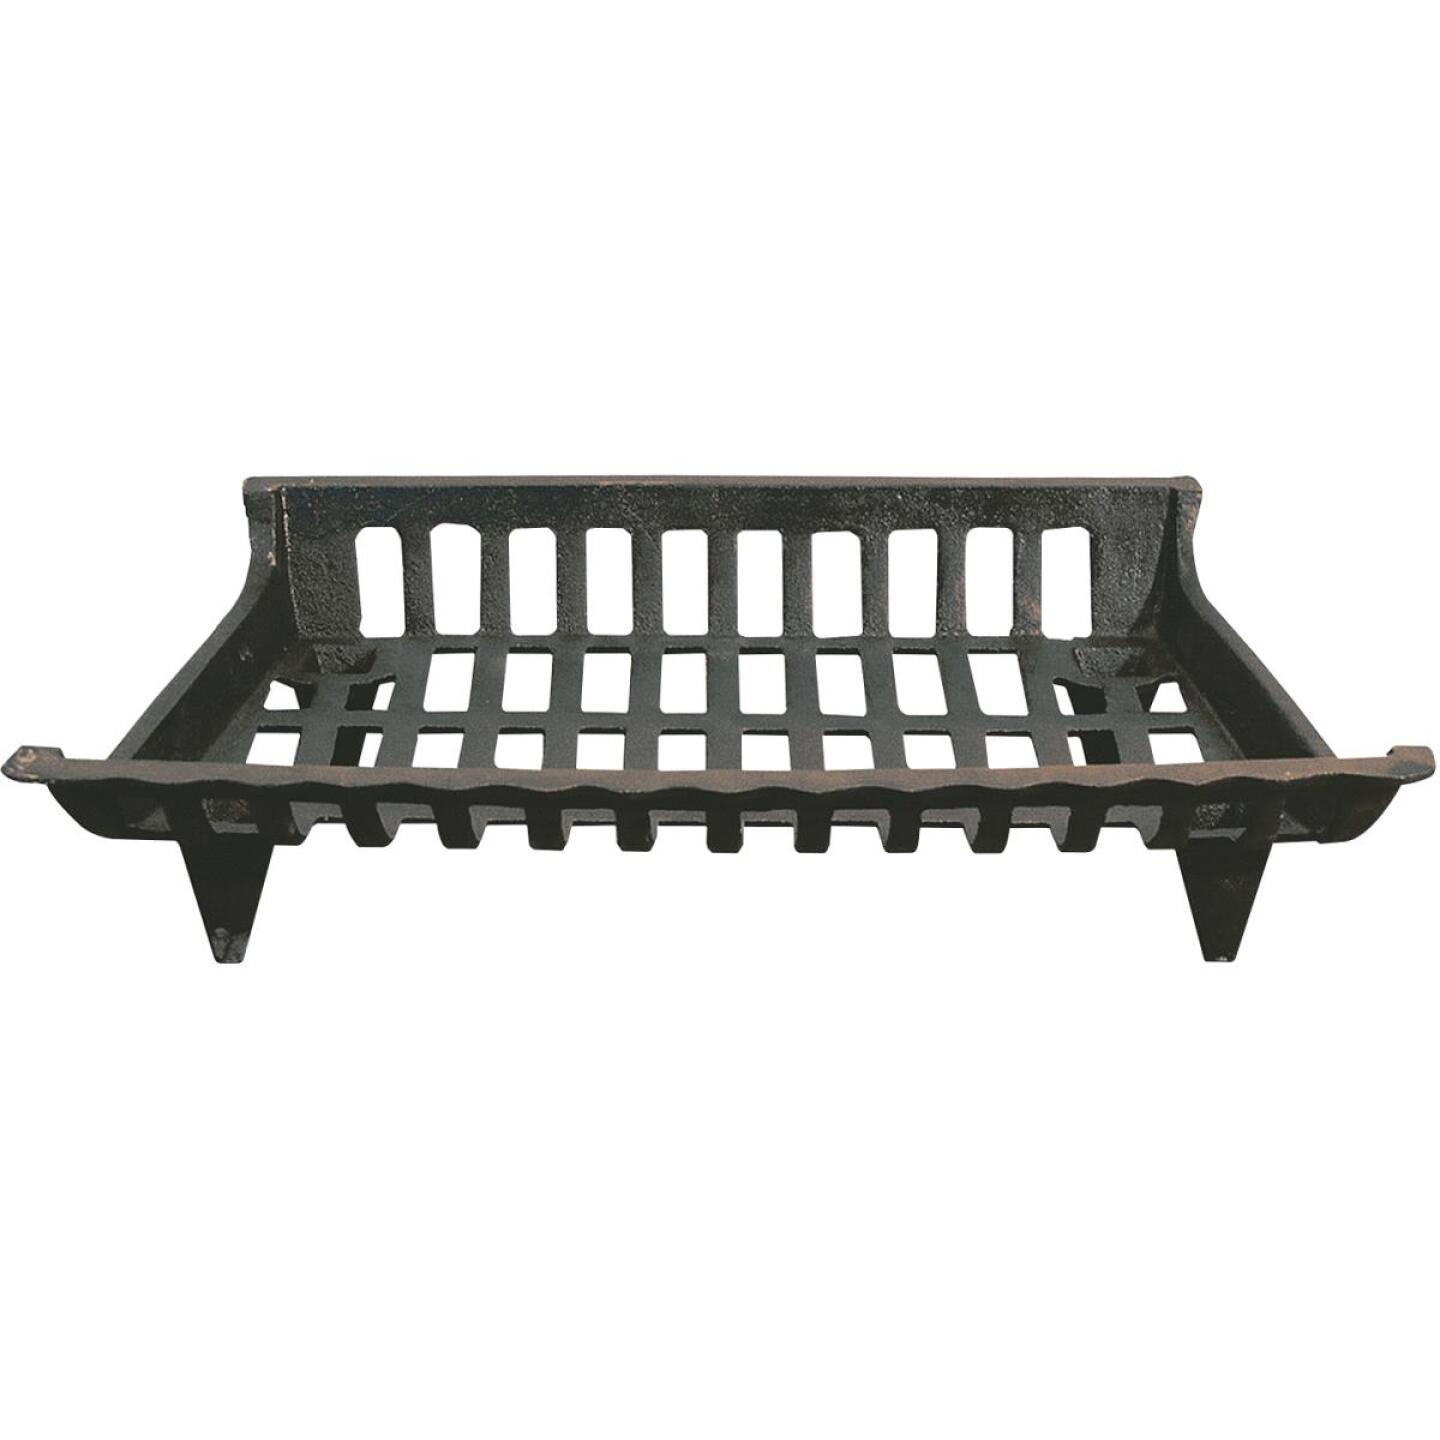 Home Impressions 24 In. Cast Iron Fireplace Grate Image 1